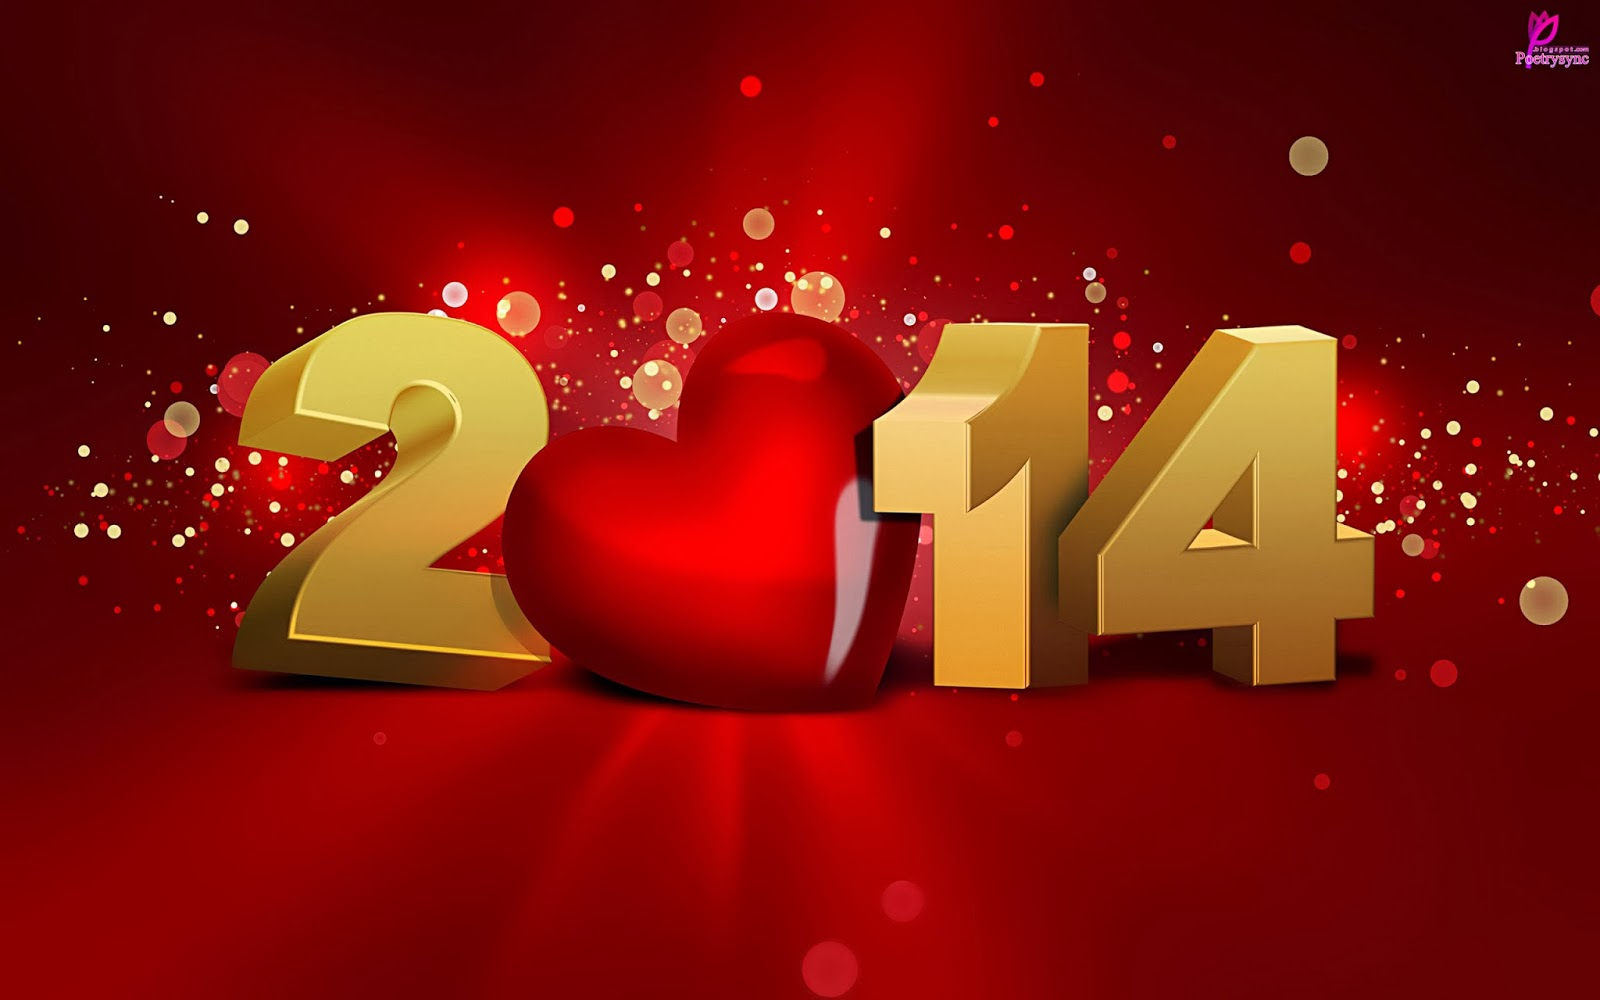 My New Years Wish For Every Being Is That You Know In Your Heart